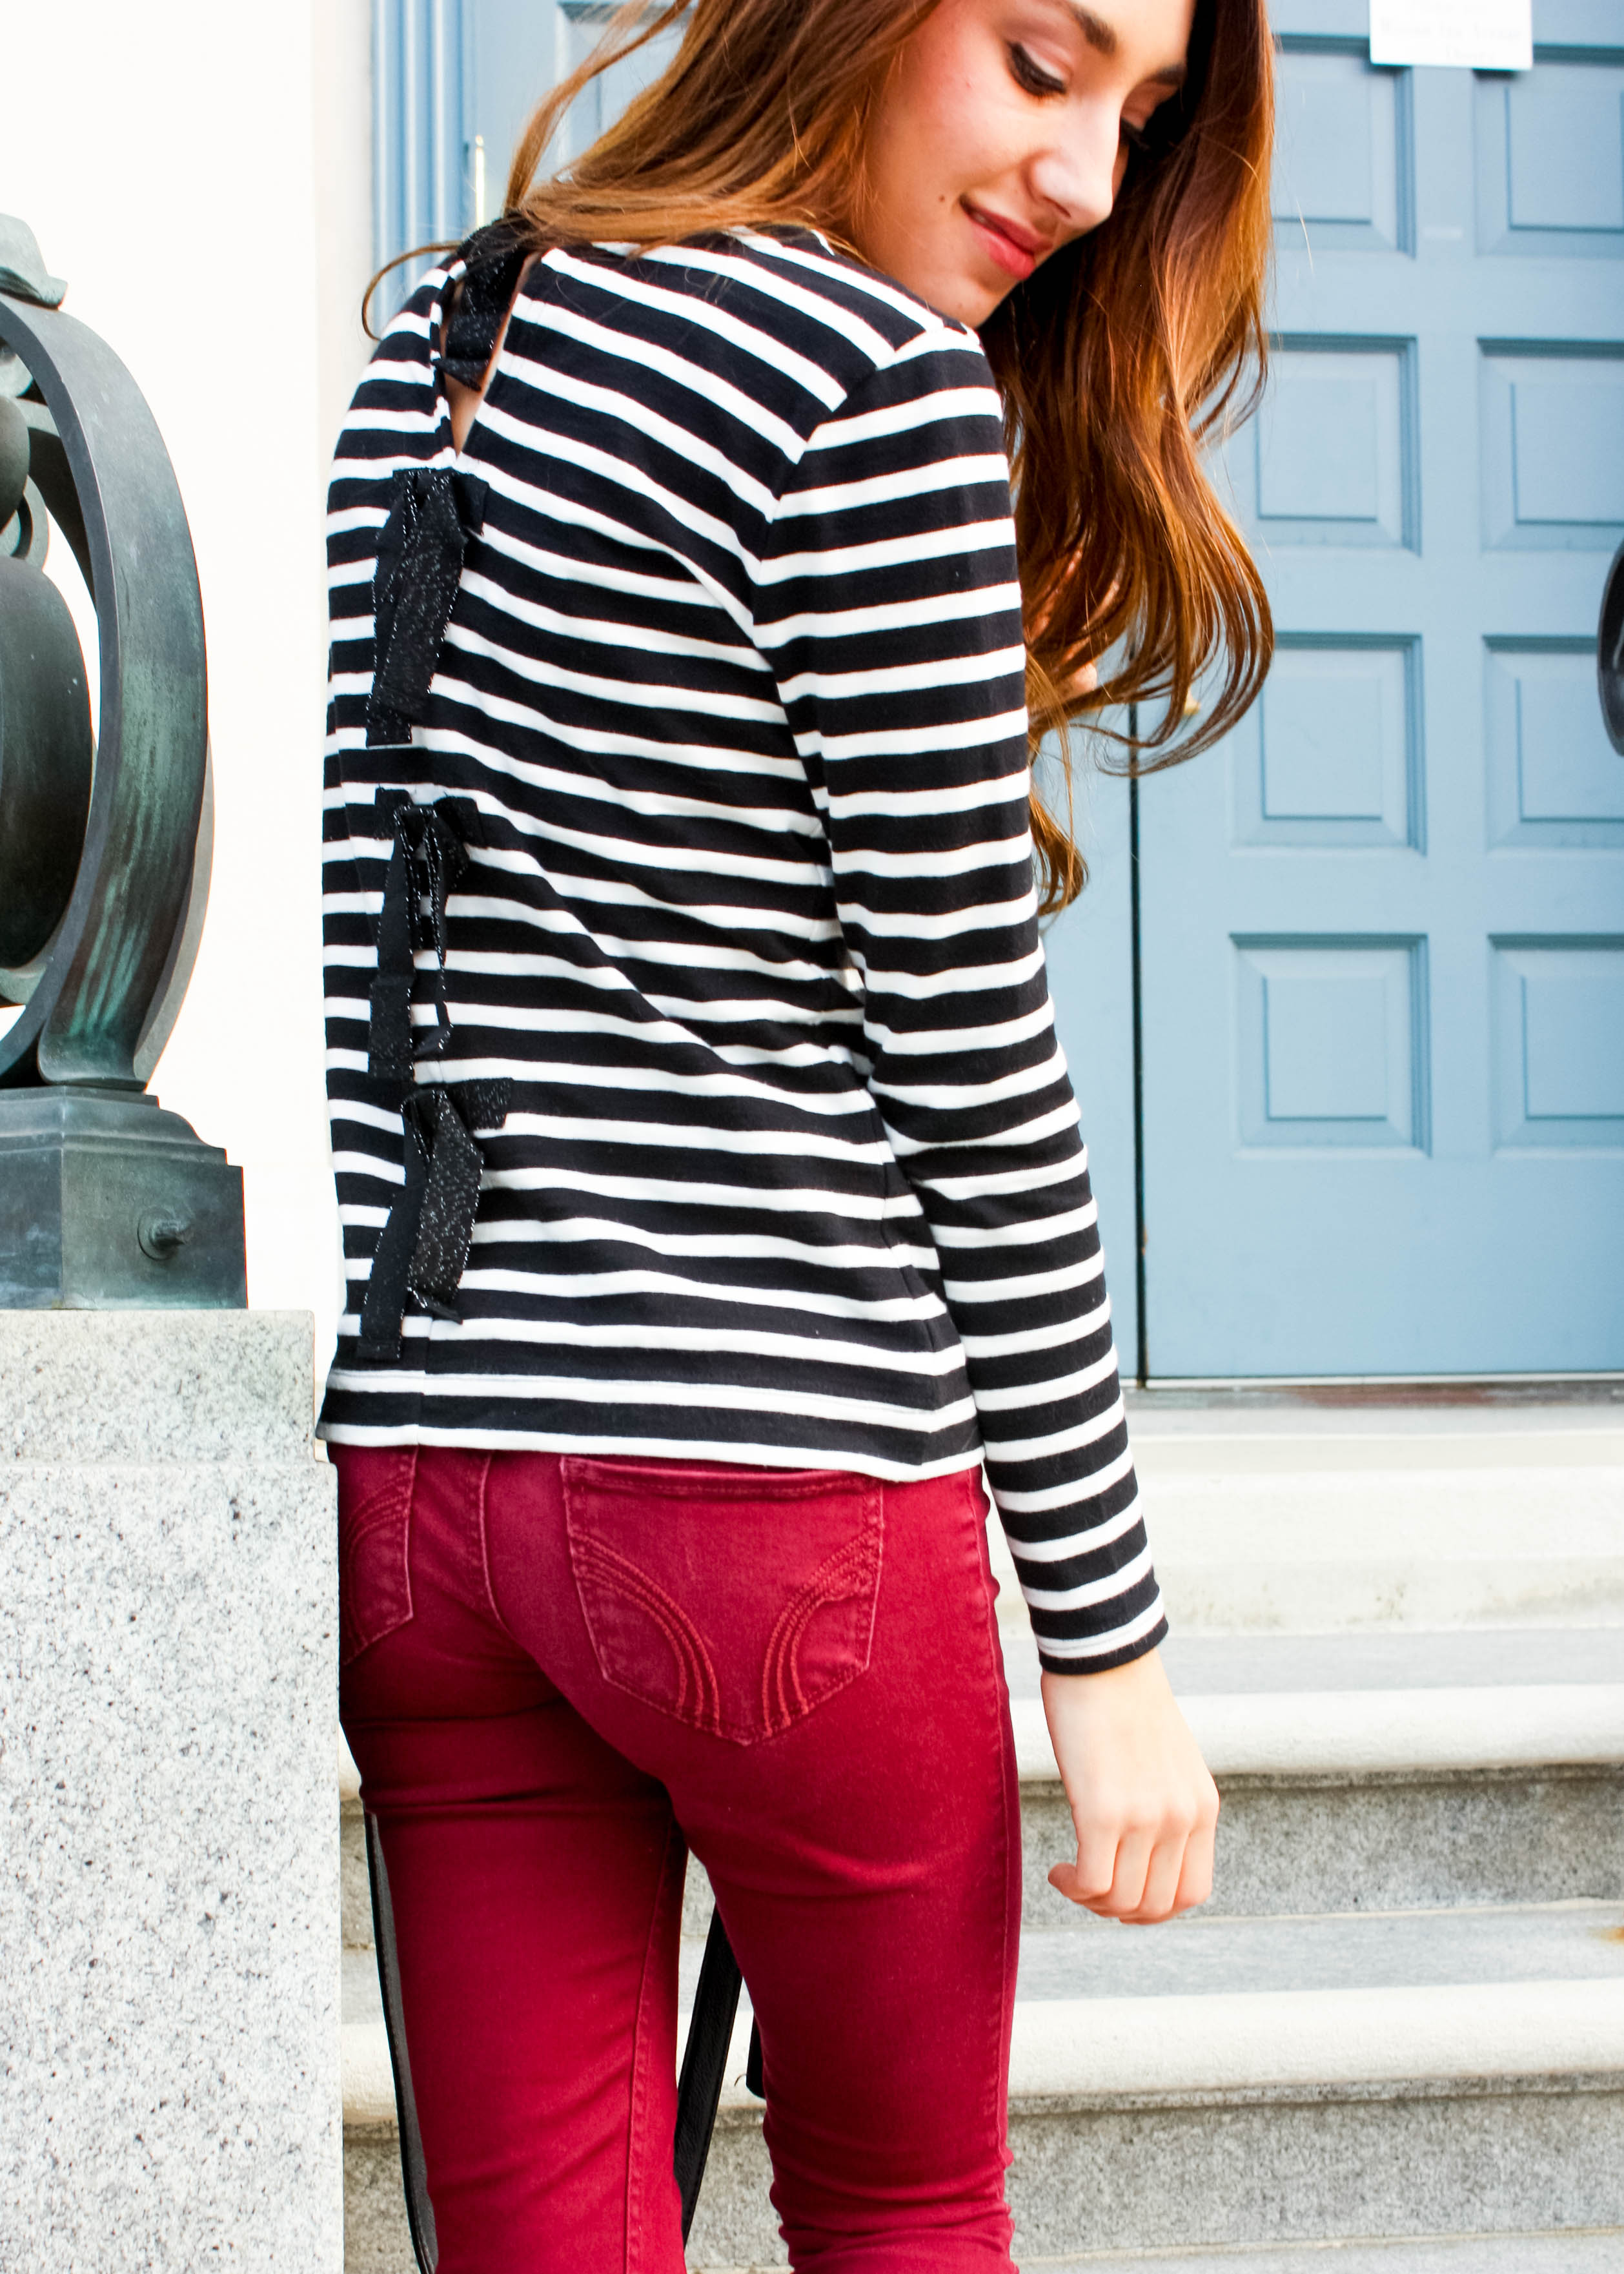 Moo's Musing J Crew Bow Back Sweater